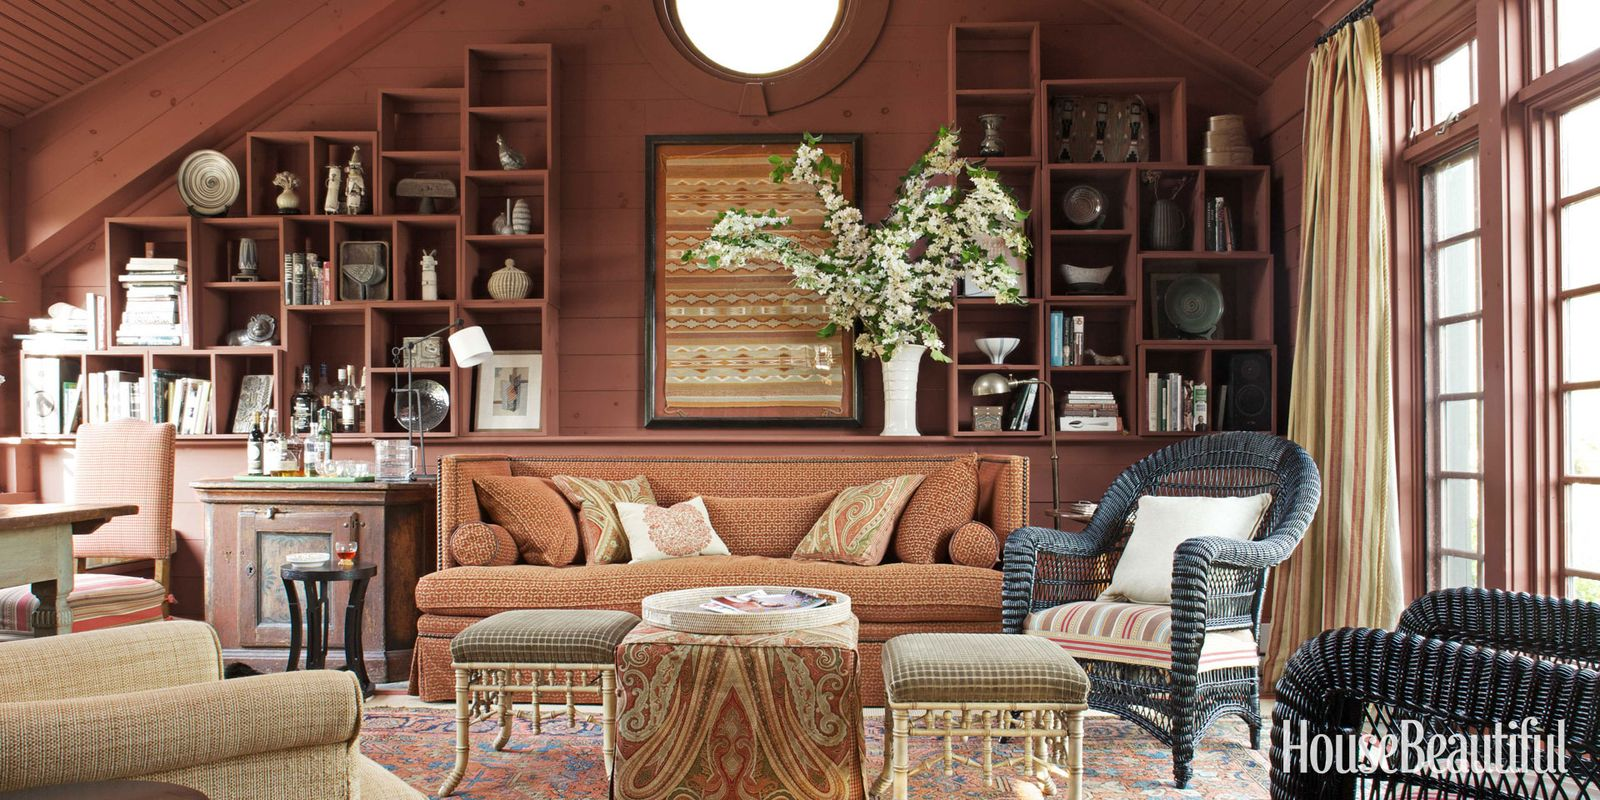 Charles o schwarz interview charles o schwarz interior for Pictures of cozy homes